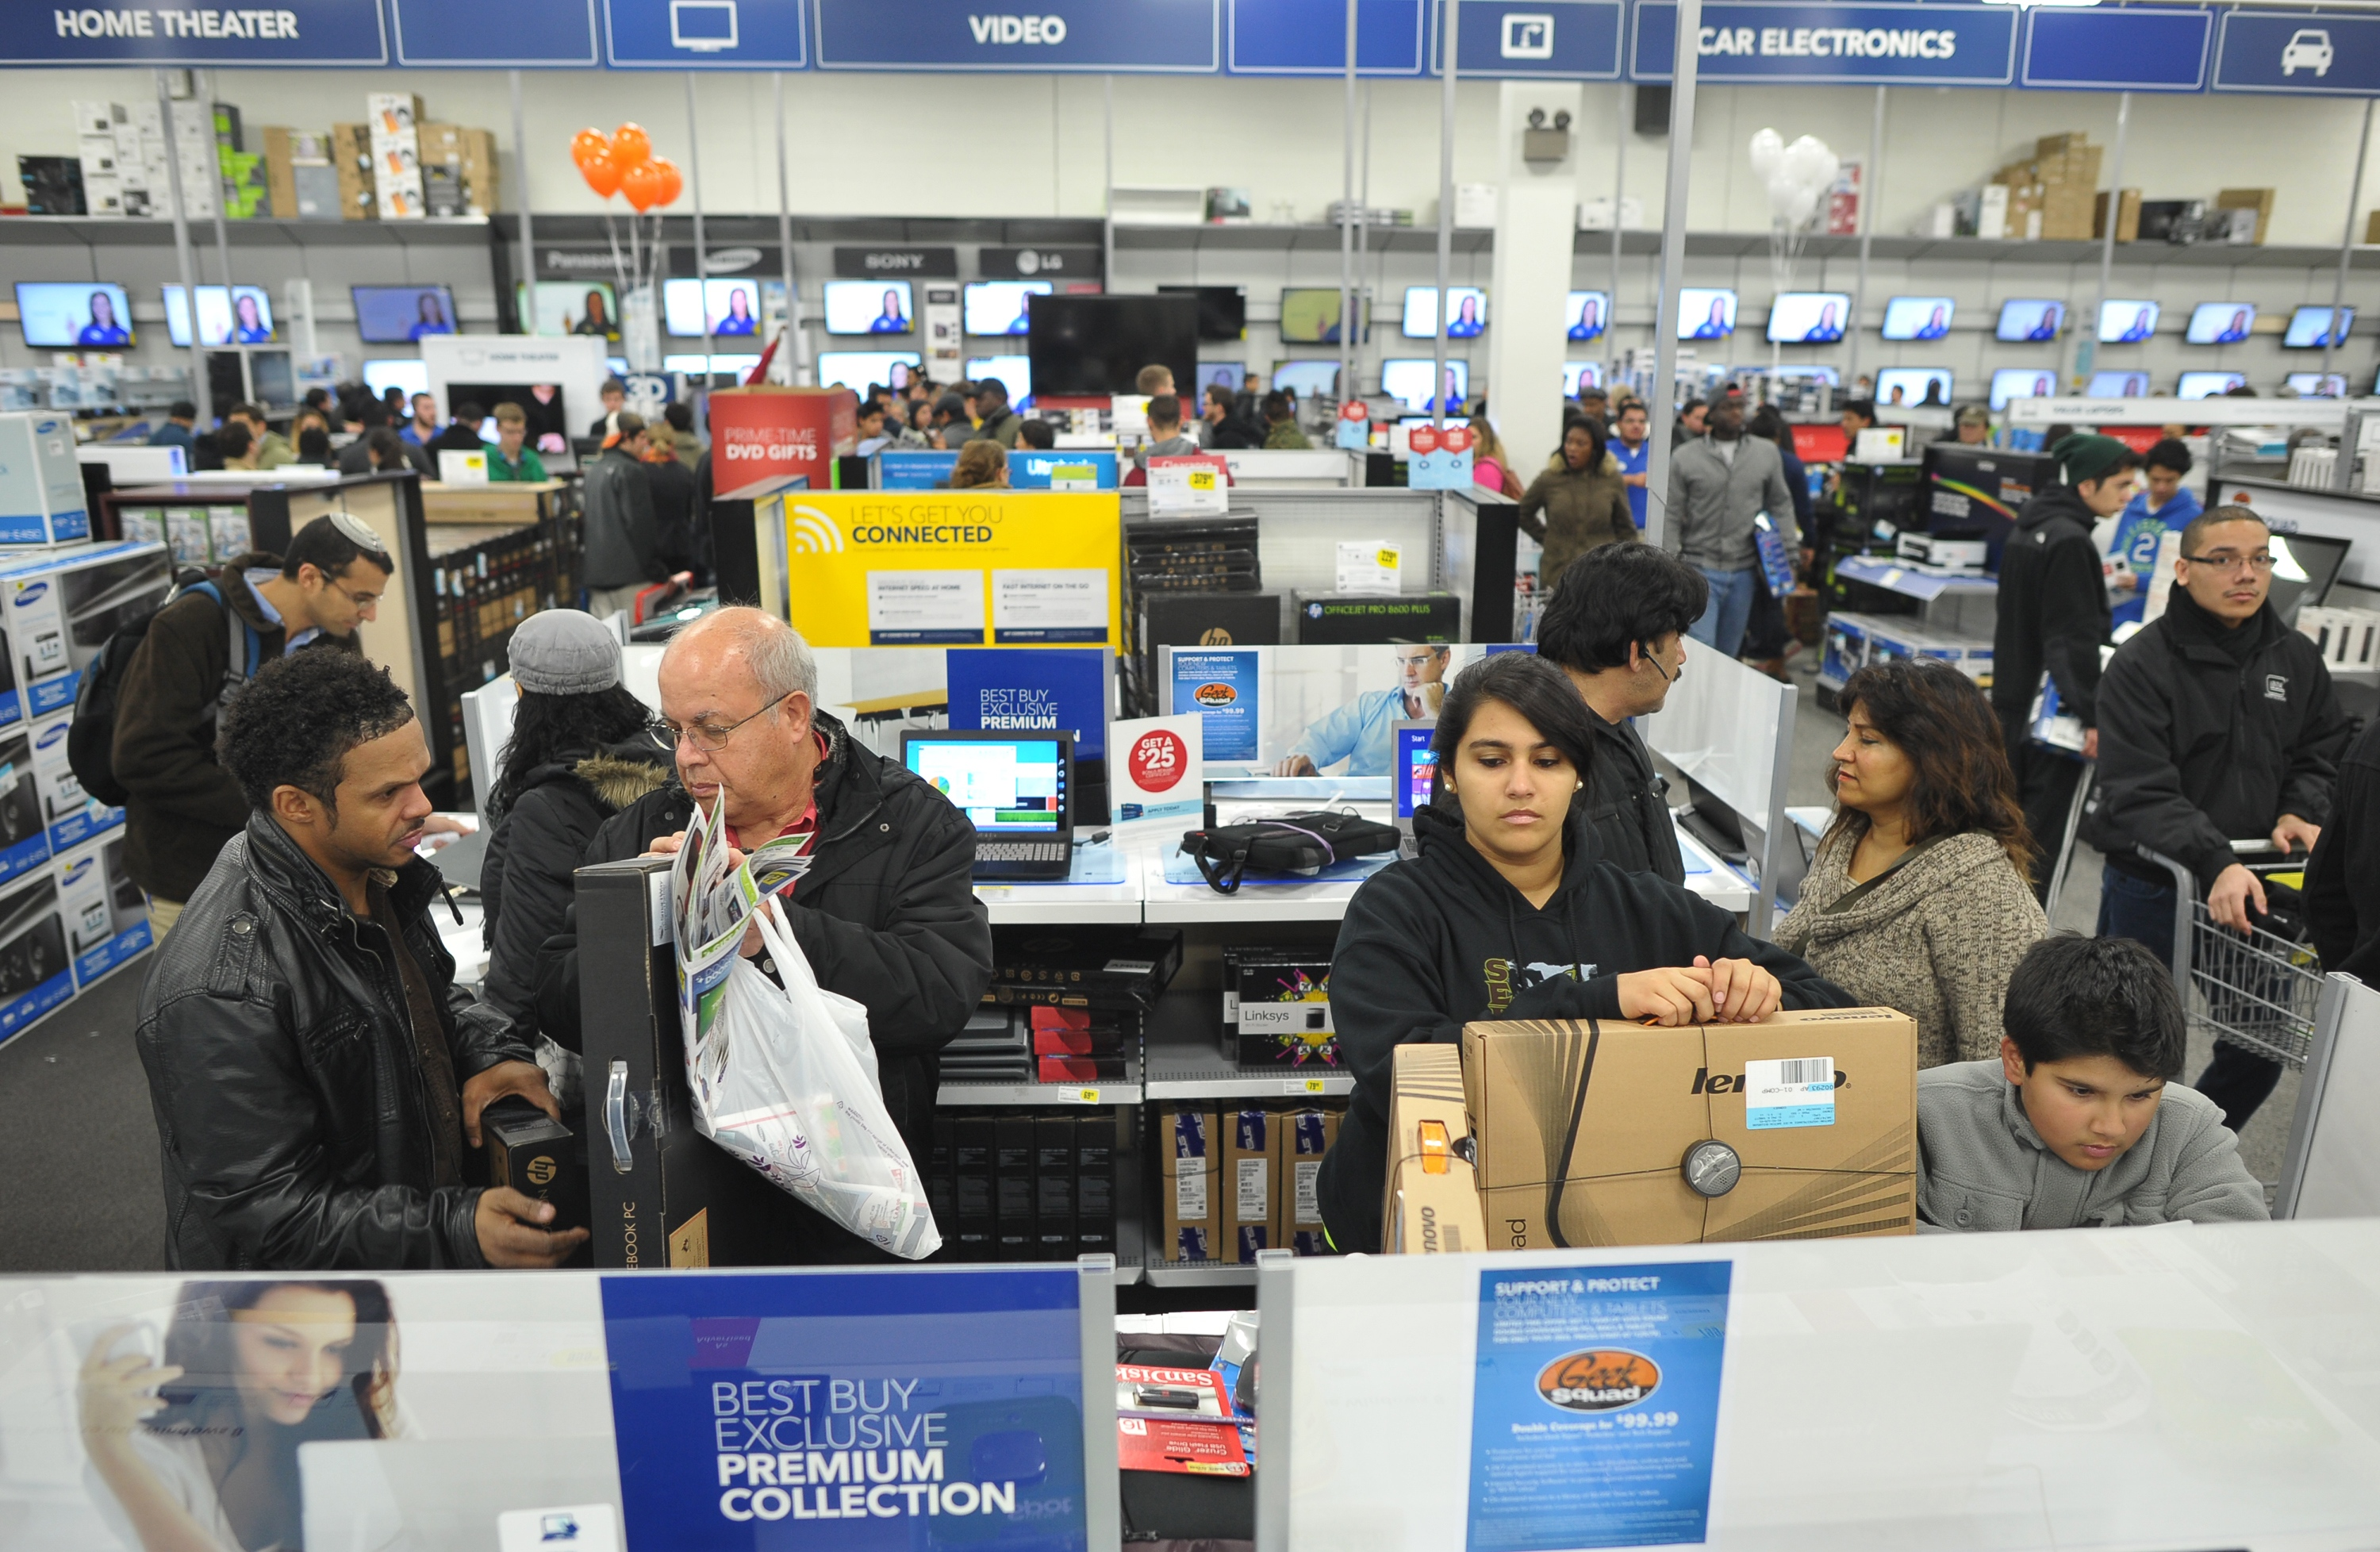 1e8d4c18ef9ba Why Are Apple, Google, Microsoft, And Samsung Interested In Best Buy?